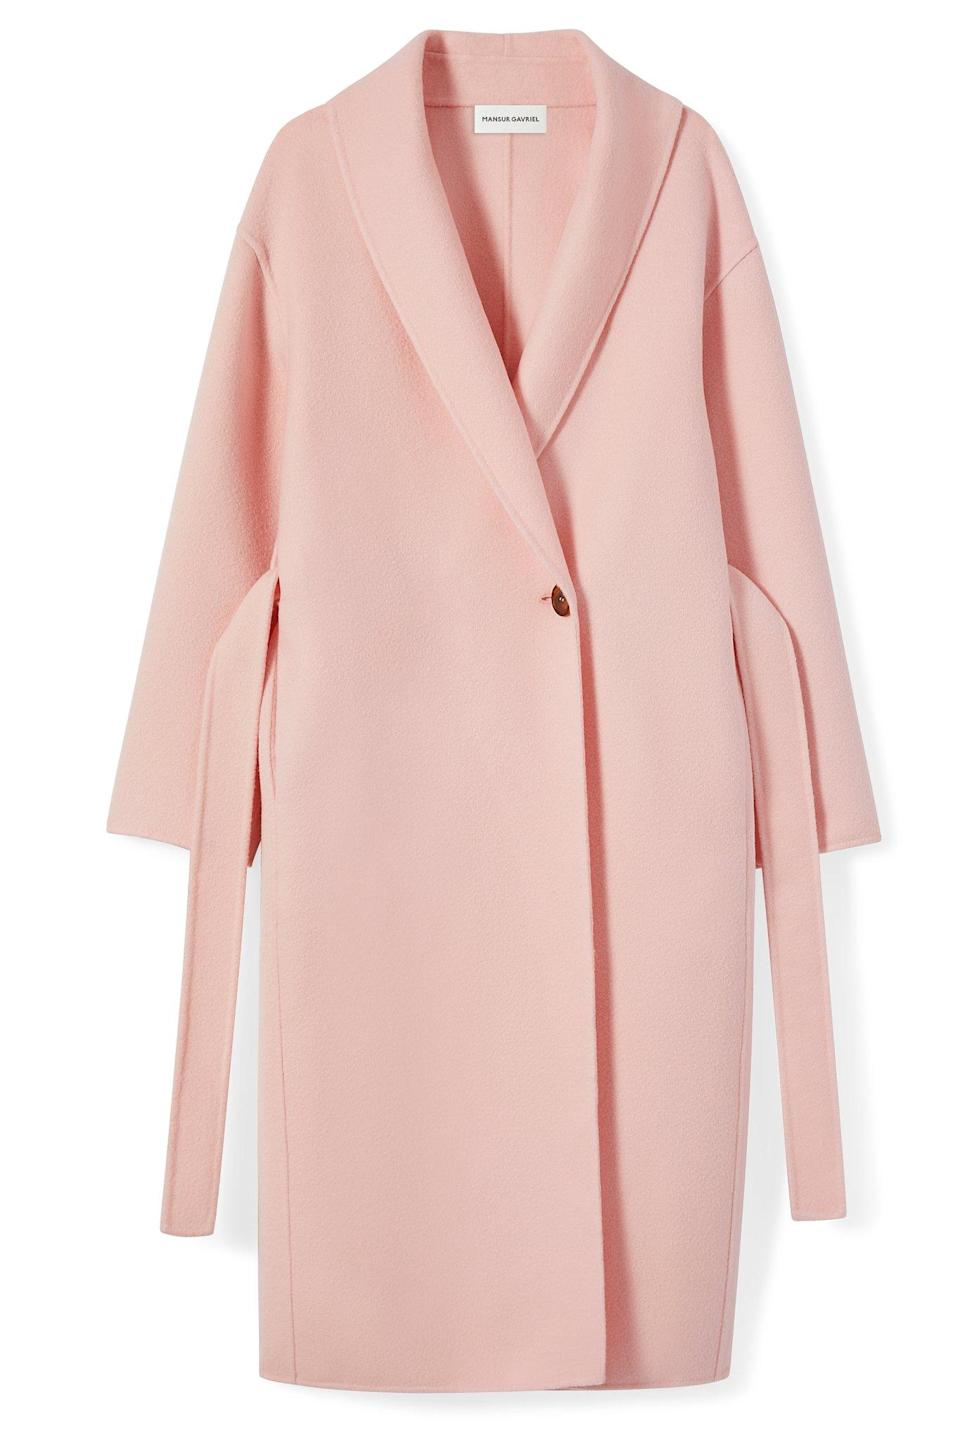 """<p>Mansur Gavriel showed its debut ready to wear line at New York Fashion Week and if its sales reflect their accessories, their coats are set to sell like hot cakes. From candy-coloured coats to sweet hued knits, we want <em>everything</em>. And we can guarantee that a few members of the fashion elite will be wearing an item or two this week.<br><br><em><a rel=""""nofollow noopener"""" href=""""https://www.mansurgavriel.com/products/wool-cozy-coat-rosa"""" target=""""_blank"""" data-ylk=""""slk:Mansur Gavriel"""" class=""""link rapid-noclick-resp"""">Mansur Gavriel</a>, Approx £750</em> </p>"""